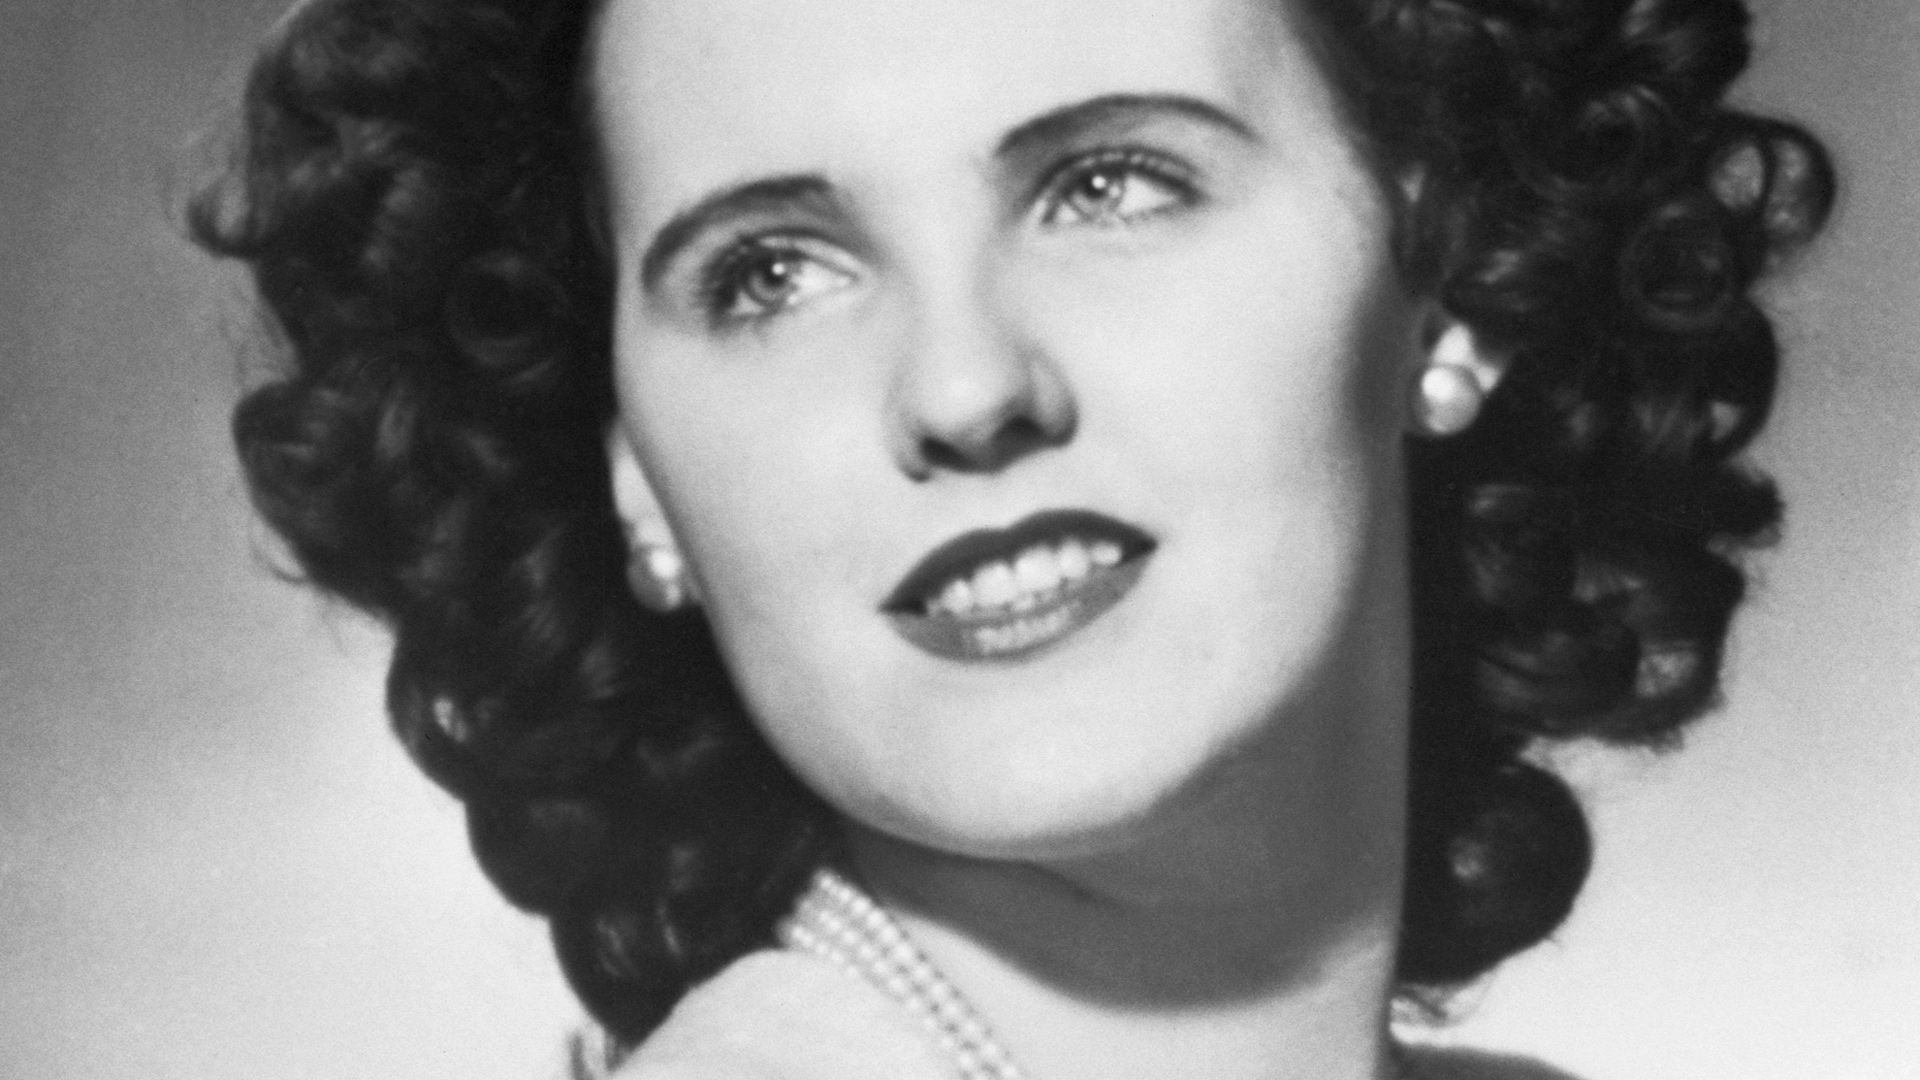 Black Dahlia Murder: How 'Moral Panic' Gripped the Community in the Wake of Elizabeth Short's Gruesome Death